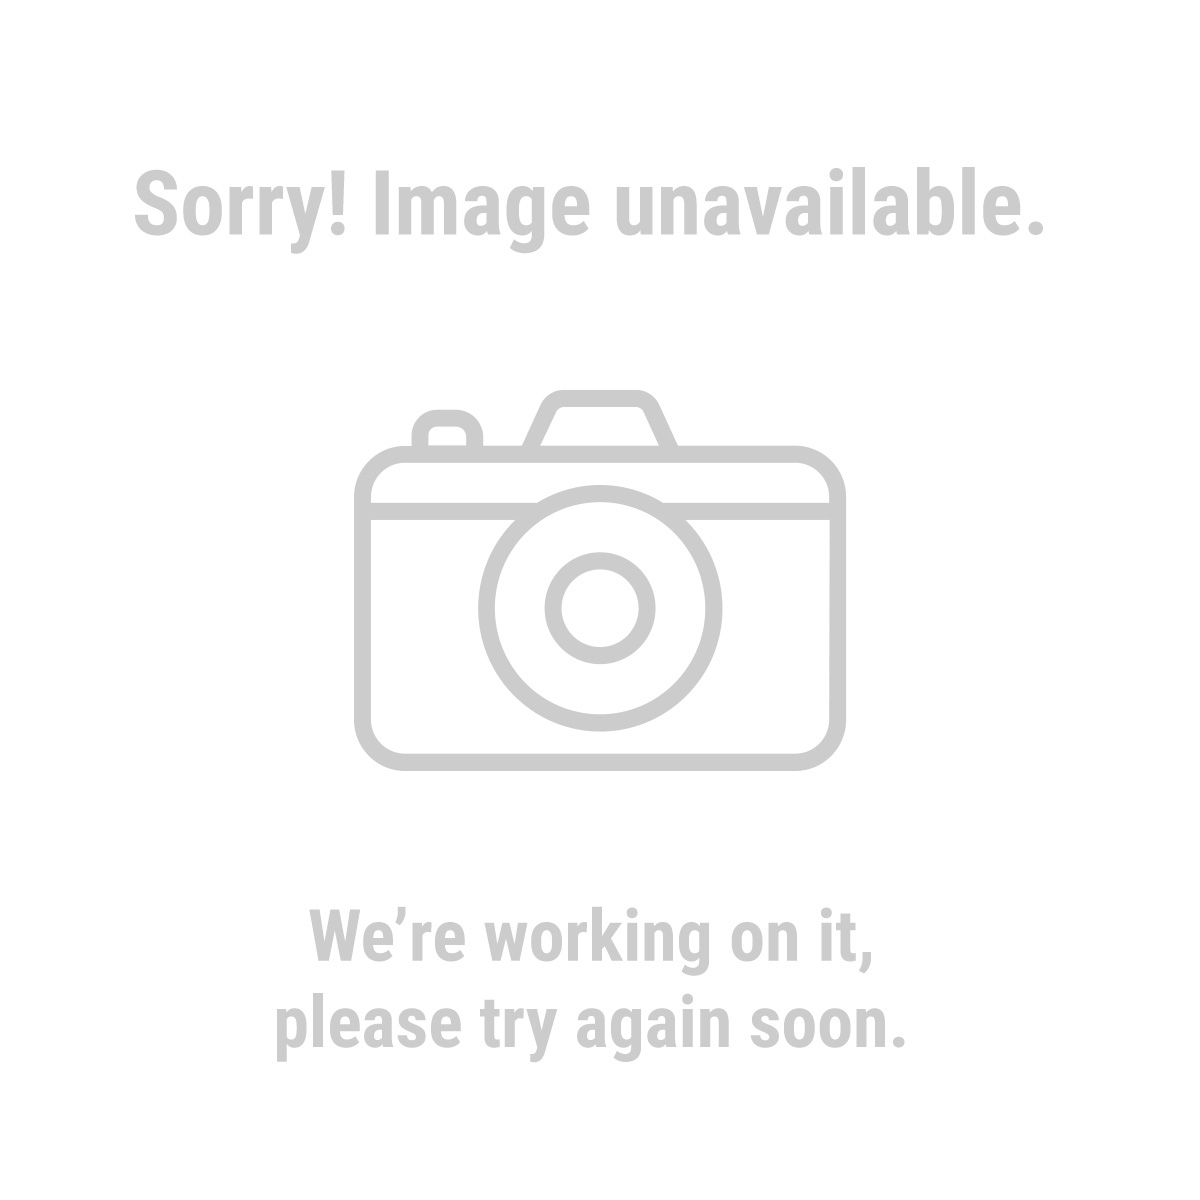 Wall To Flush Cut Saws : Cutting out a floor flush along walls and cabinets